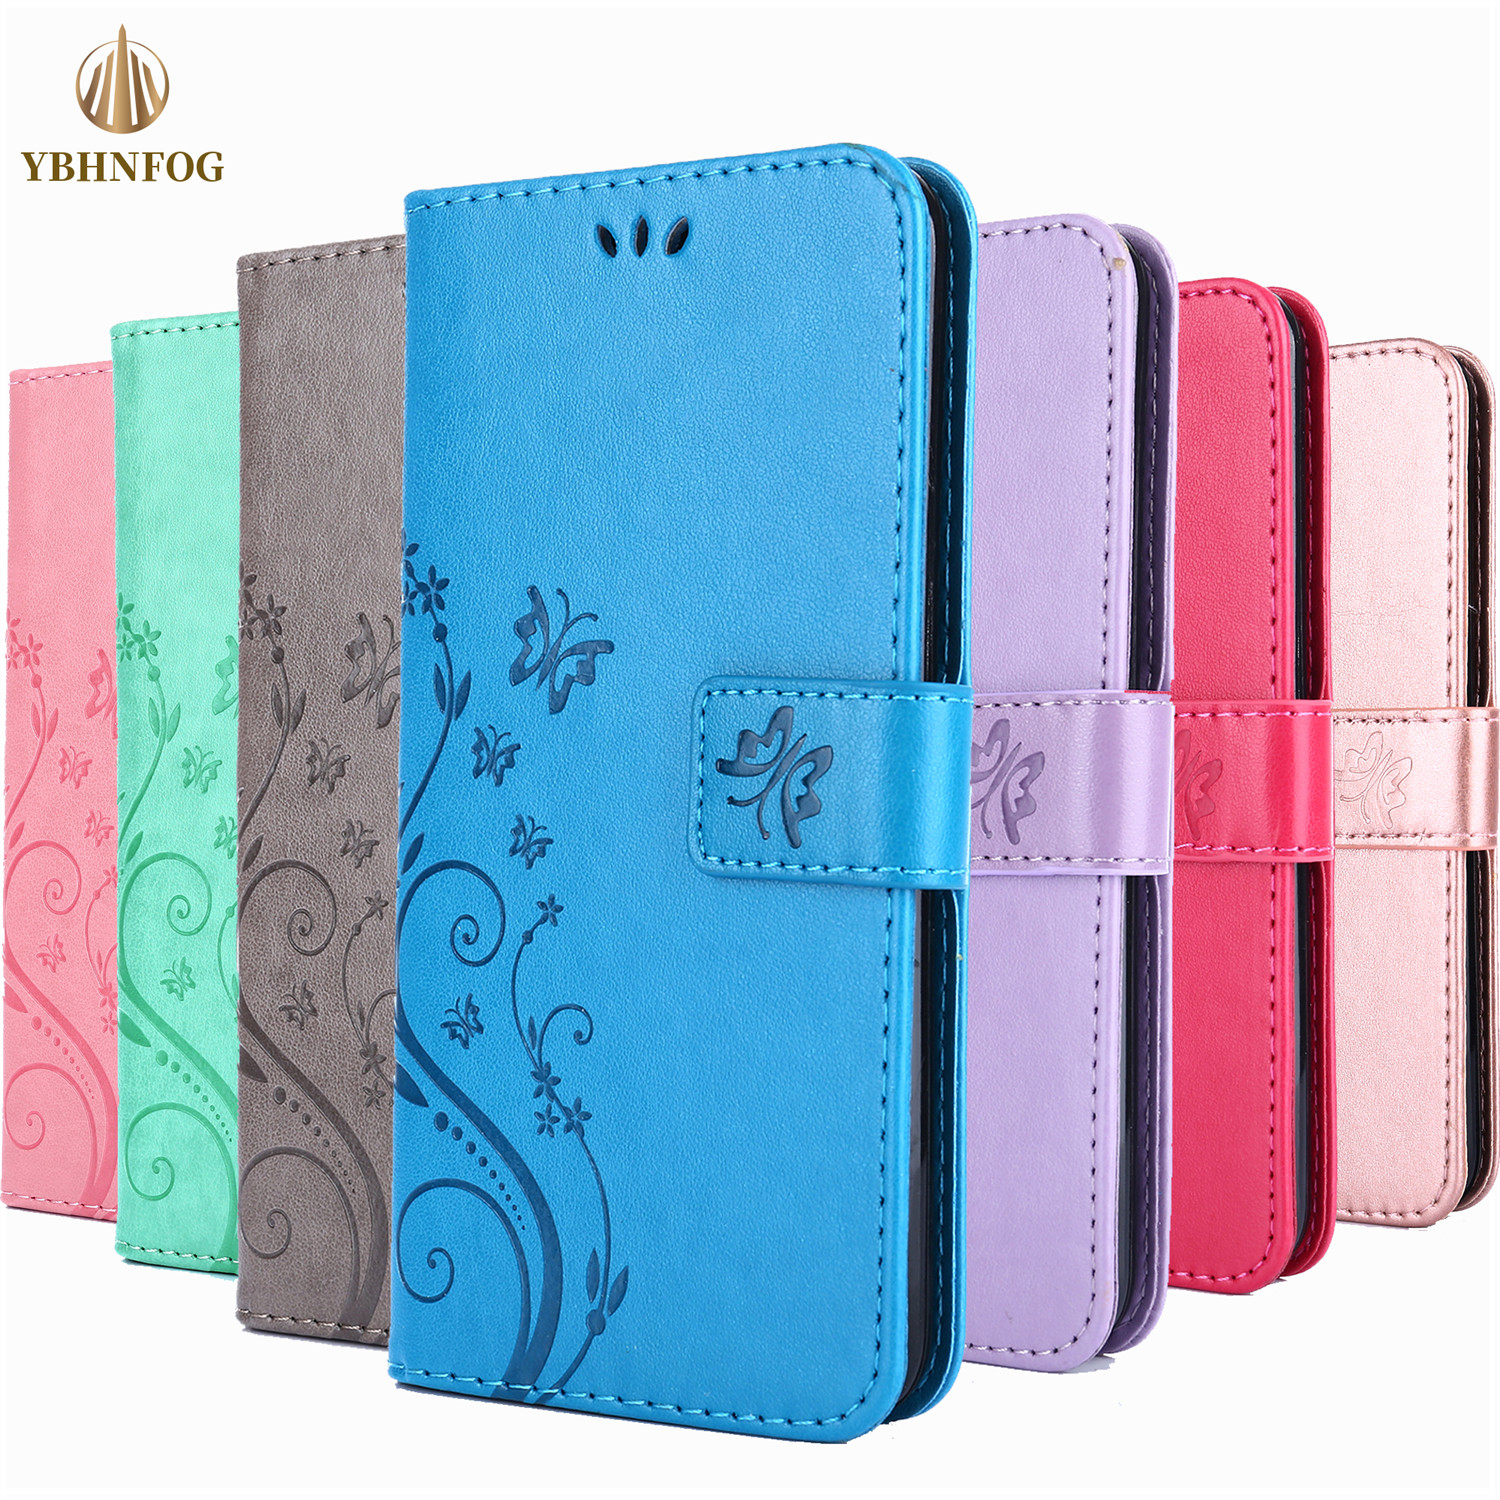 <font><b>3D</b></font> Flower Leather Case For <font><b>Samsung</b></font> Galaxy A50 A30 A10 A20 A40 A70 J1 J3 <font><b>J5</b></font> A3 A5 <font><b>2017</b></font> A6 J6 2018 S8 S9 Plus S10E S20 Ultra Cover image